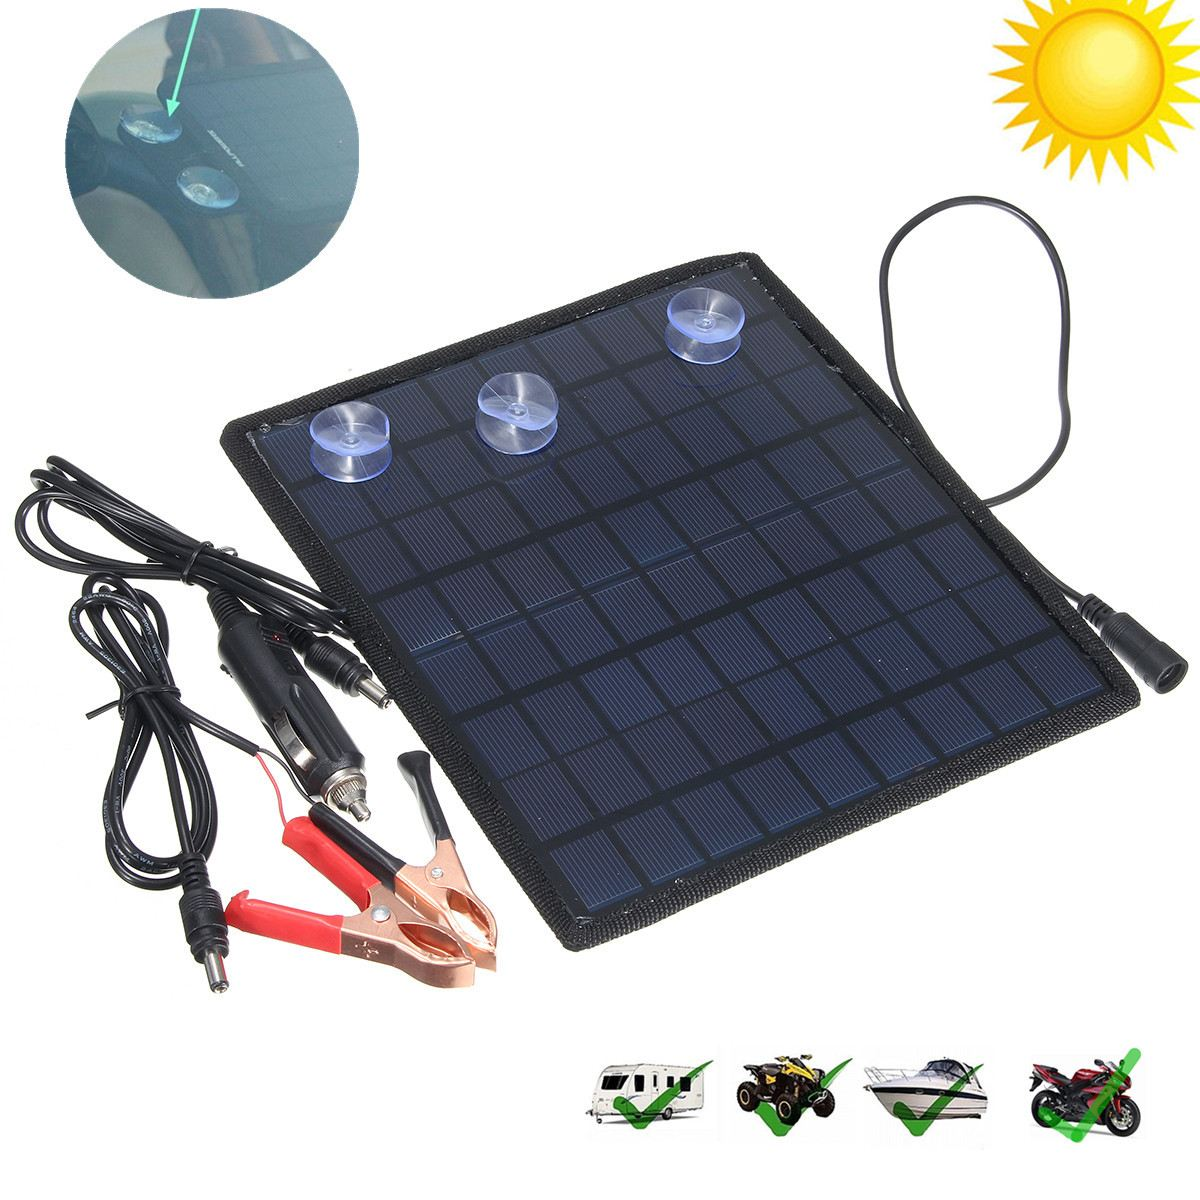 Good Quality Solar Panel Car Charger 12V Battery Charger Solar Maintainer Charger for 12V Battery of Car Automobile Motorcycle 1 5w solar powered auto car battery charger black